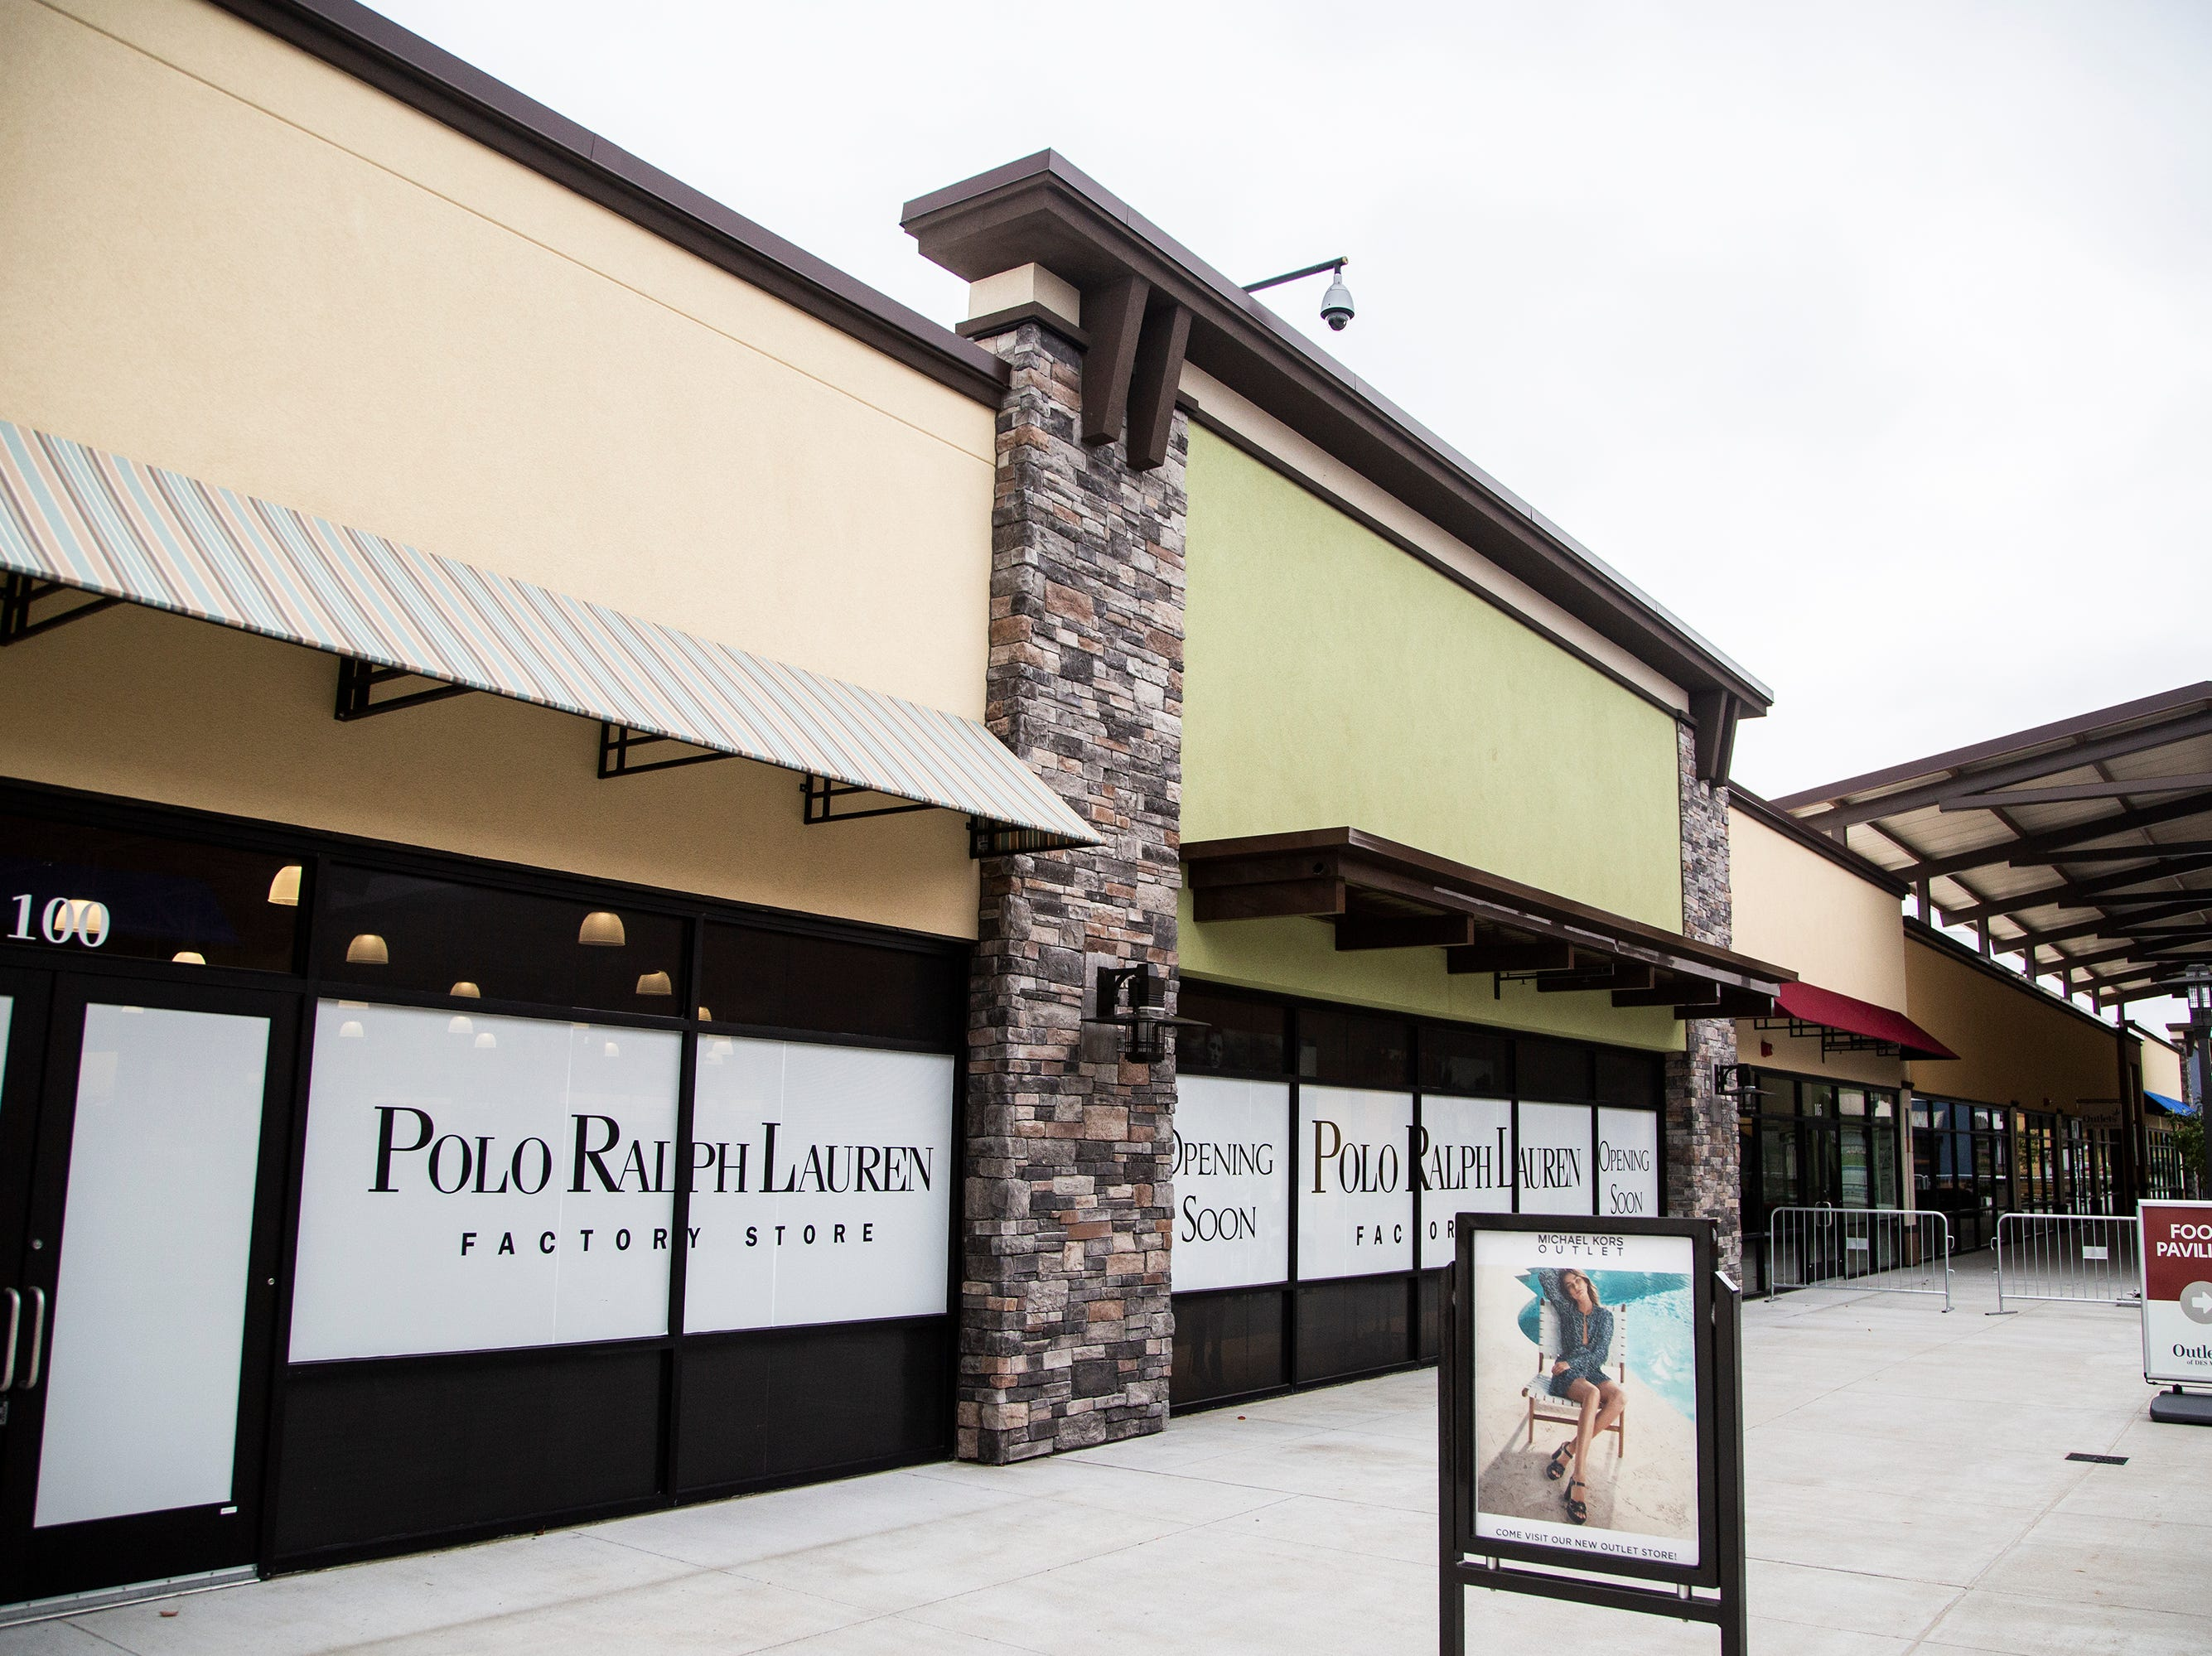 Polo Ralph Lauren prepares to open in the Outlets of Des Moines this week, on Wednesday, Oct. 10, 2018, in Altoona.